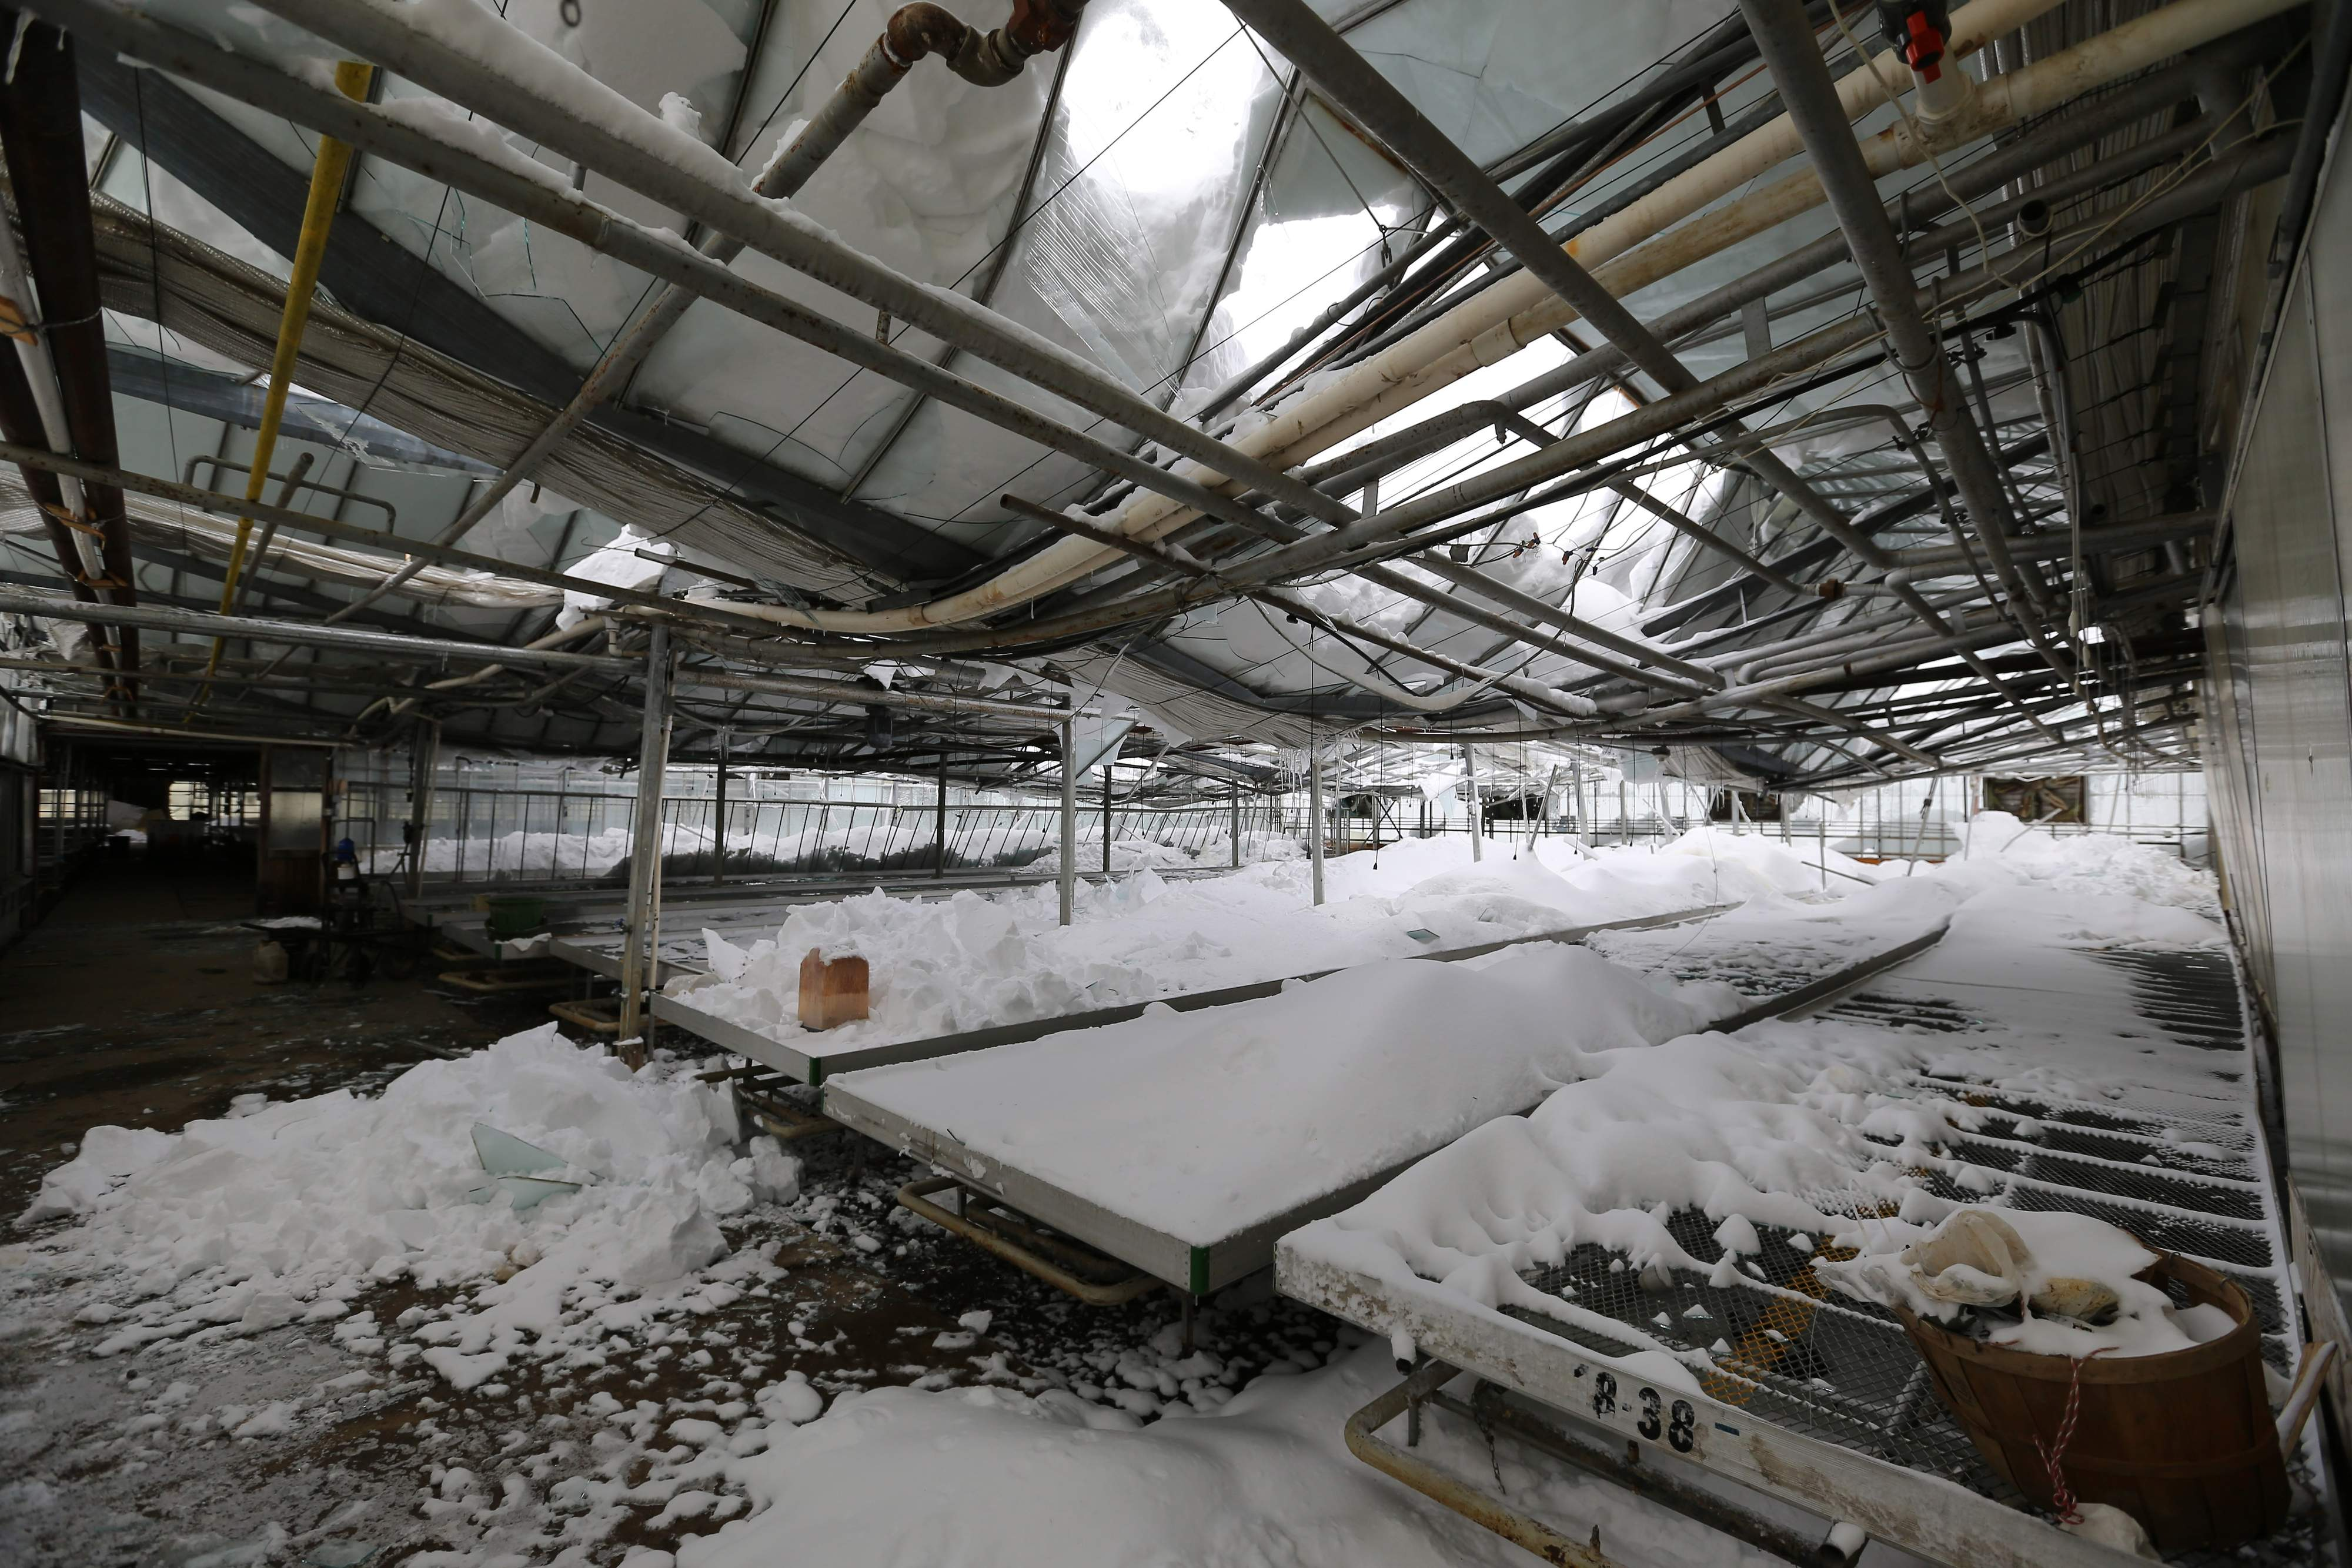 Roofs collapse under epic Buffalo snow | tbo.com